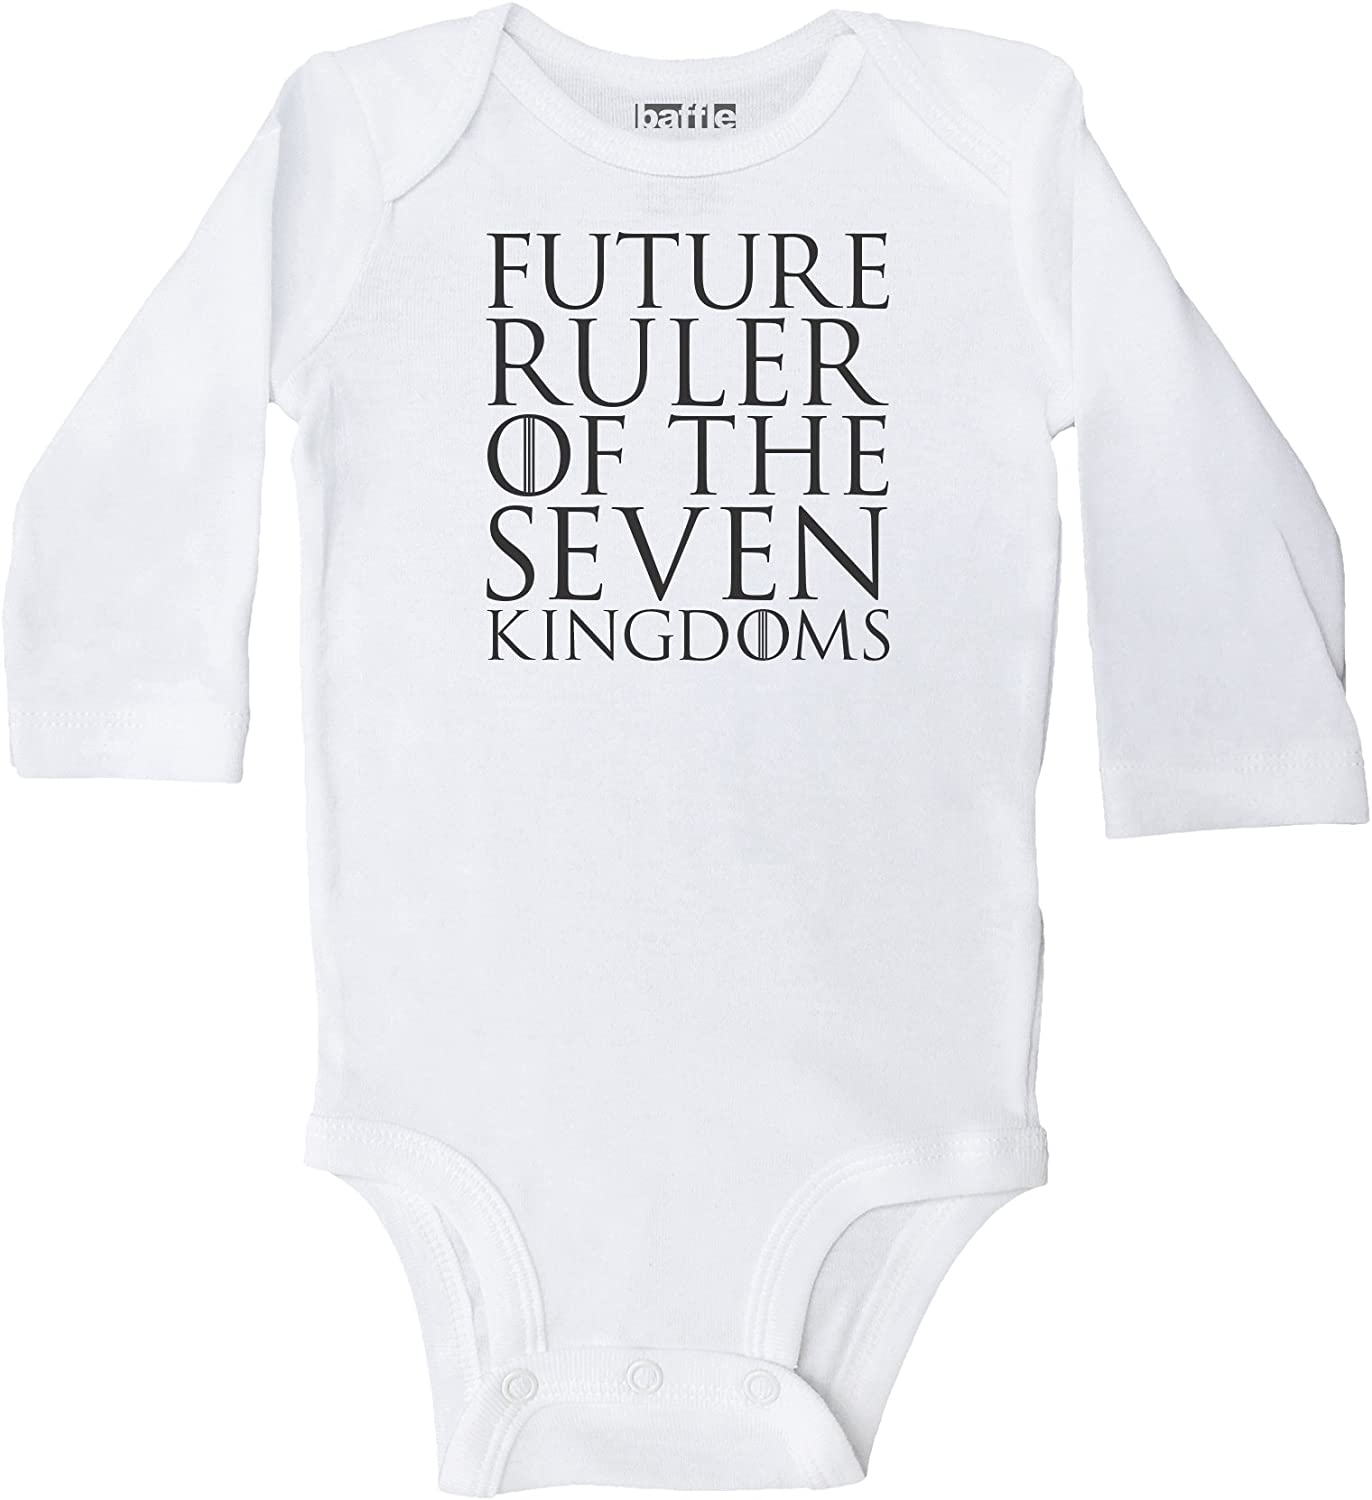 Black Text Game of Thrones Clothing Baffle Future Ruler White Long Sleeve Onesie